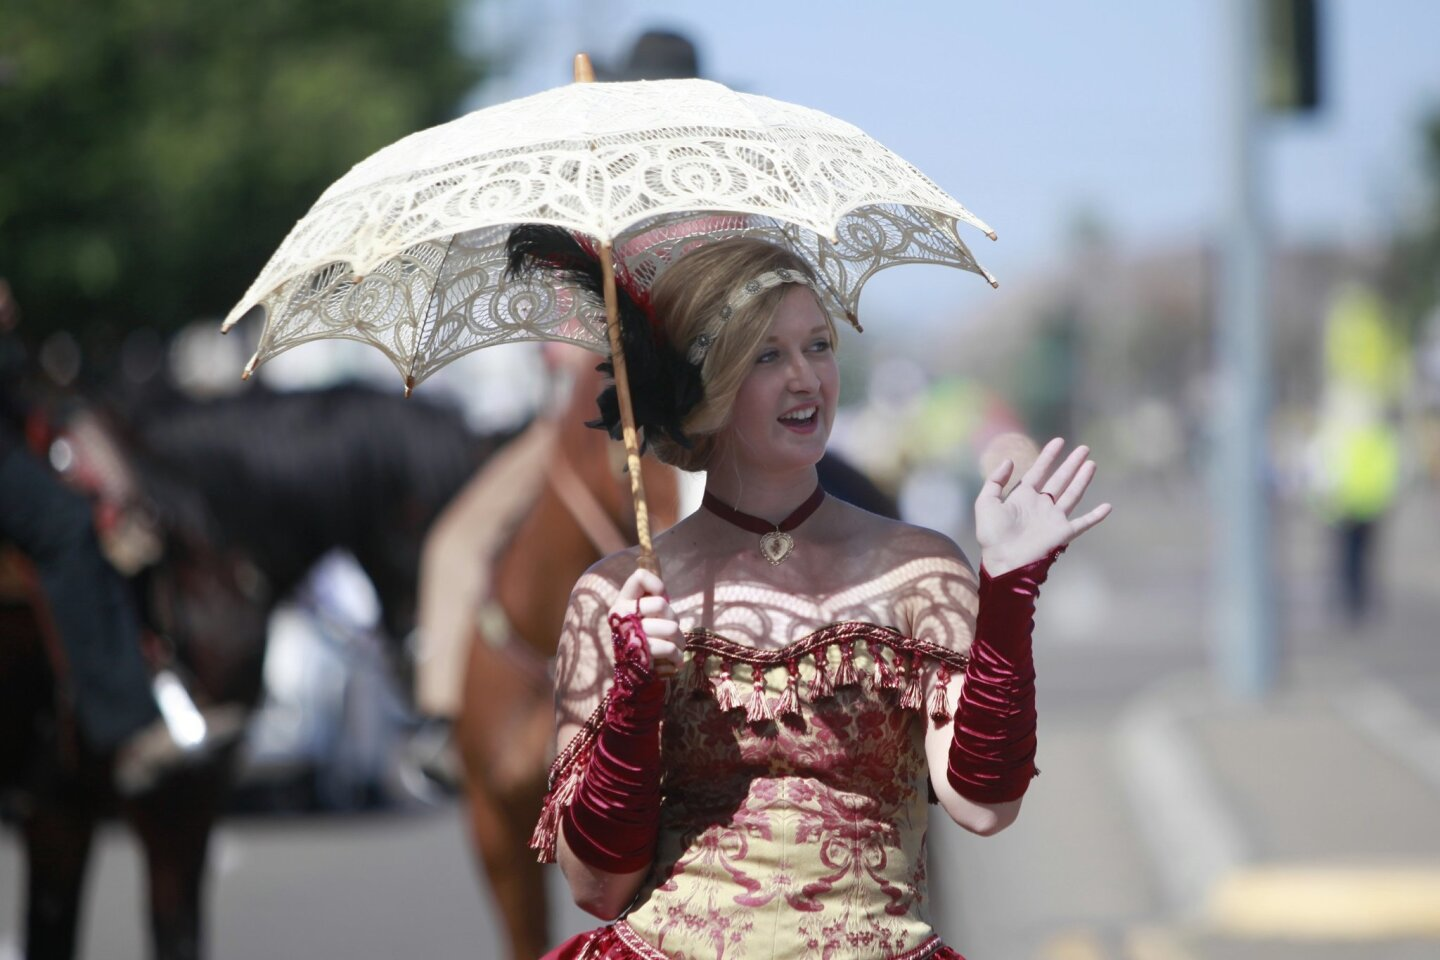 Allison Whitlow, 17, walked with a procession of wild west outlaws during the Annual Lakeside Western Days Parade Saturday morning.